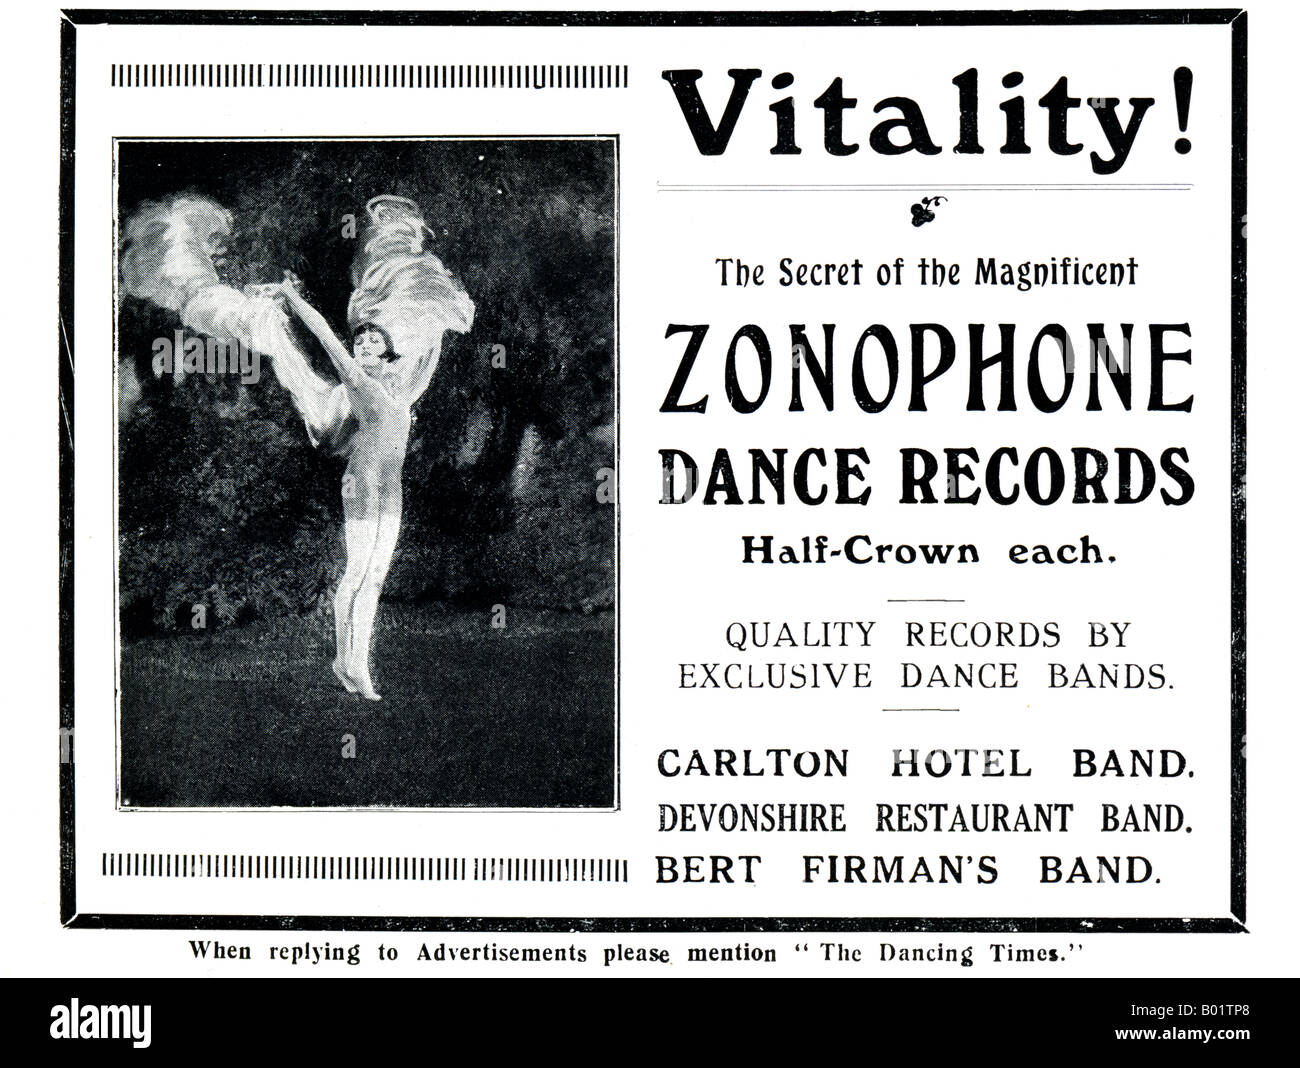 1920s Advertisement for Zonophone Dance Records 1927 FOR EDITORIAL USE ONLY - Stock Image